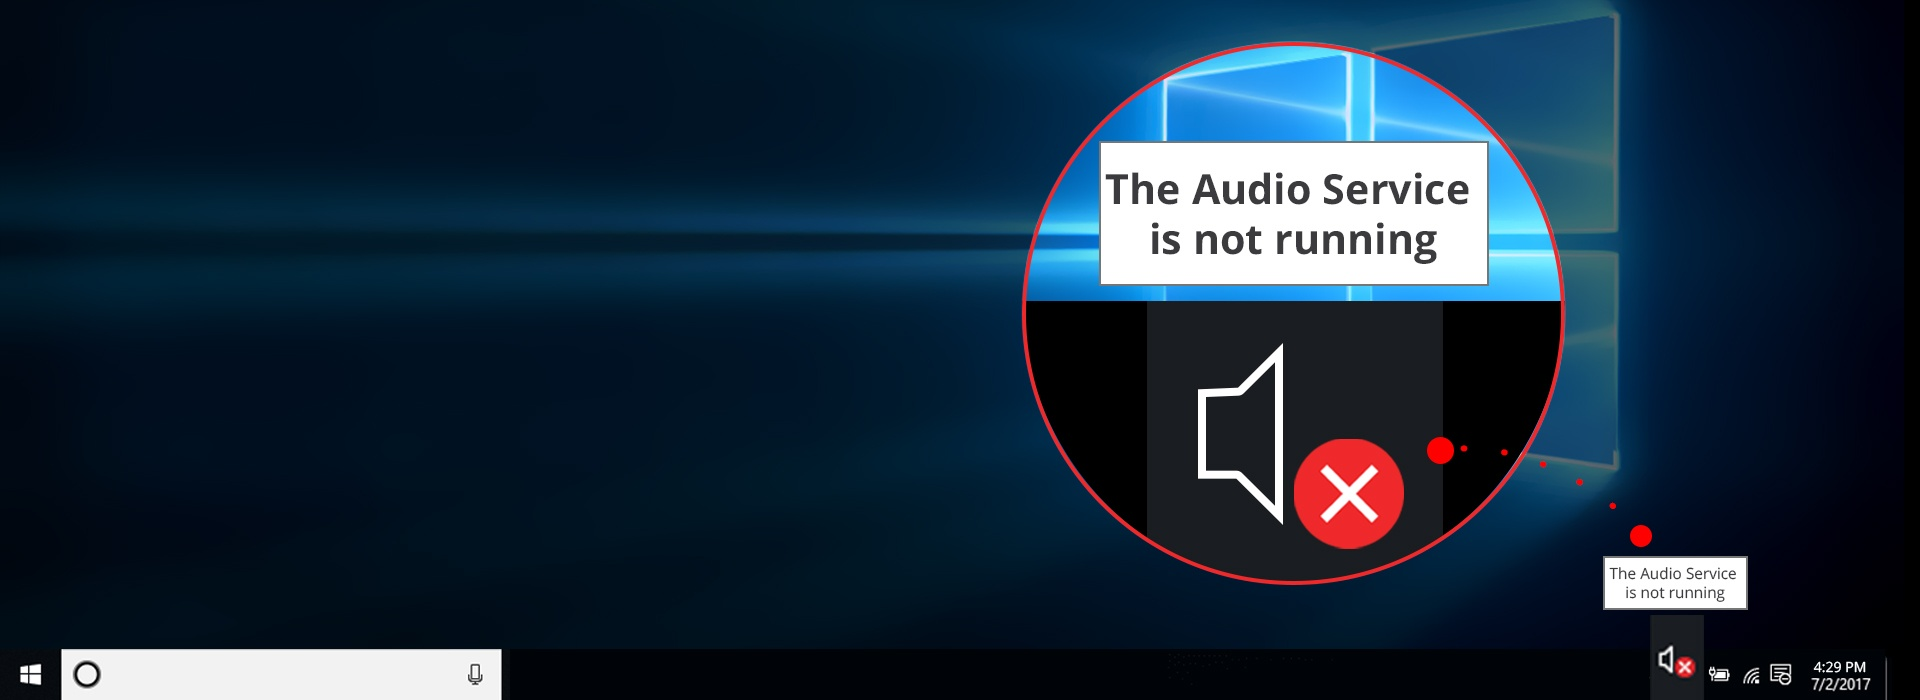 Fix the Audio Service is not running Windows 10 problem - the proven methods only - check our guide